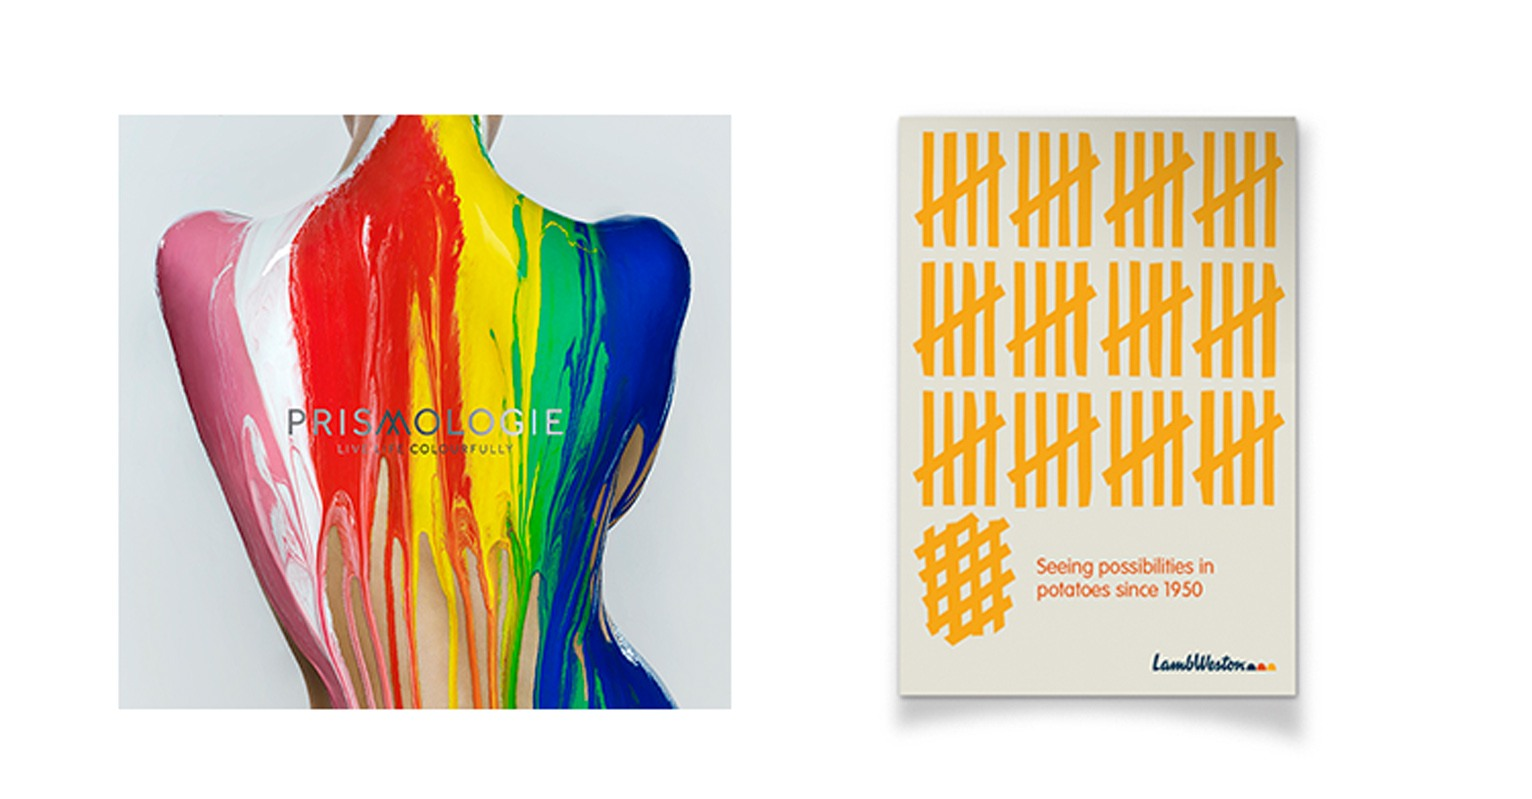 mobius awards, prismologie, lamb weston, potatoes posters, brand, identity, woman, paint ,colourful, dripping, noughts and crosses